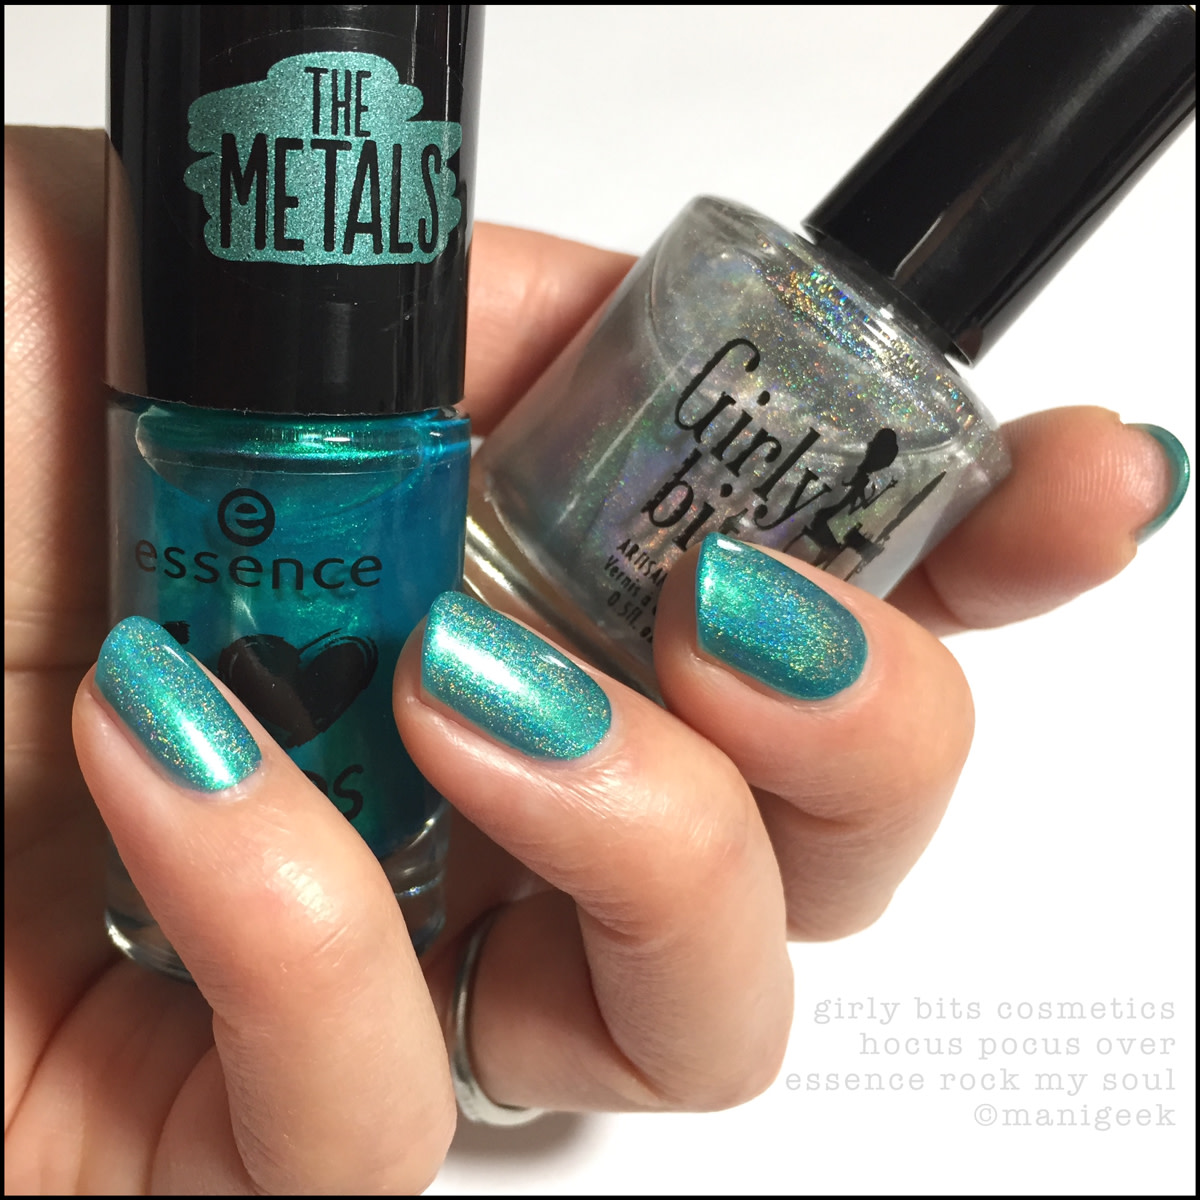 Girly Bits Hocus Pocus over Essence Rock My Soul - Essence The Metals 2016 I Love Trends Collection